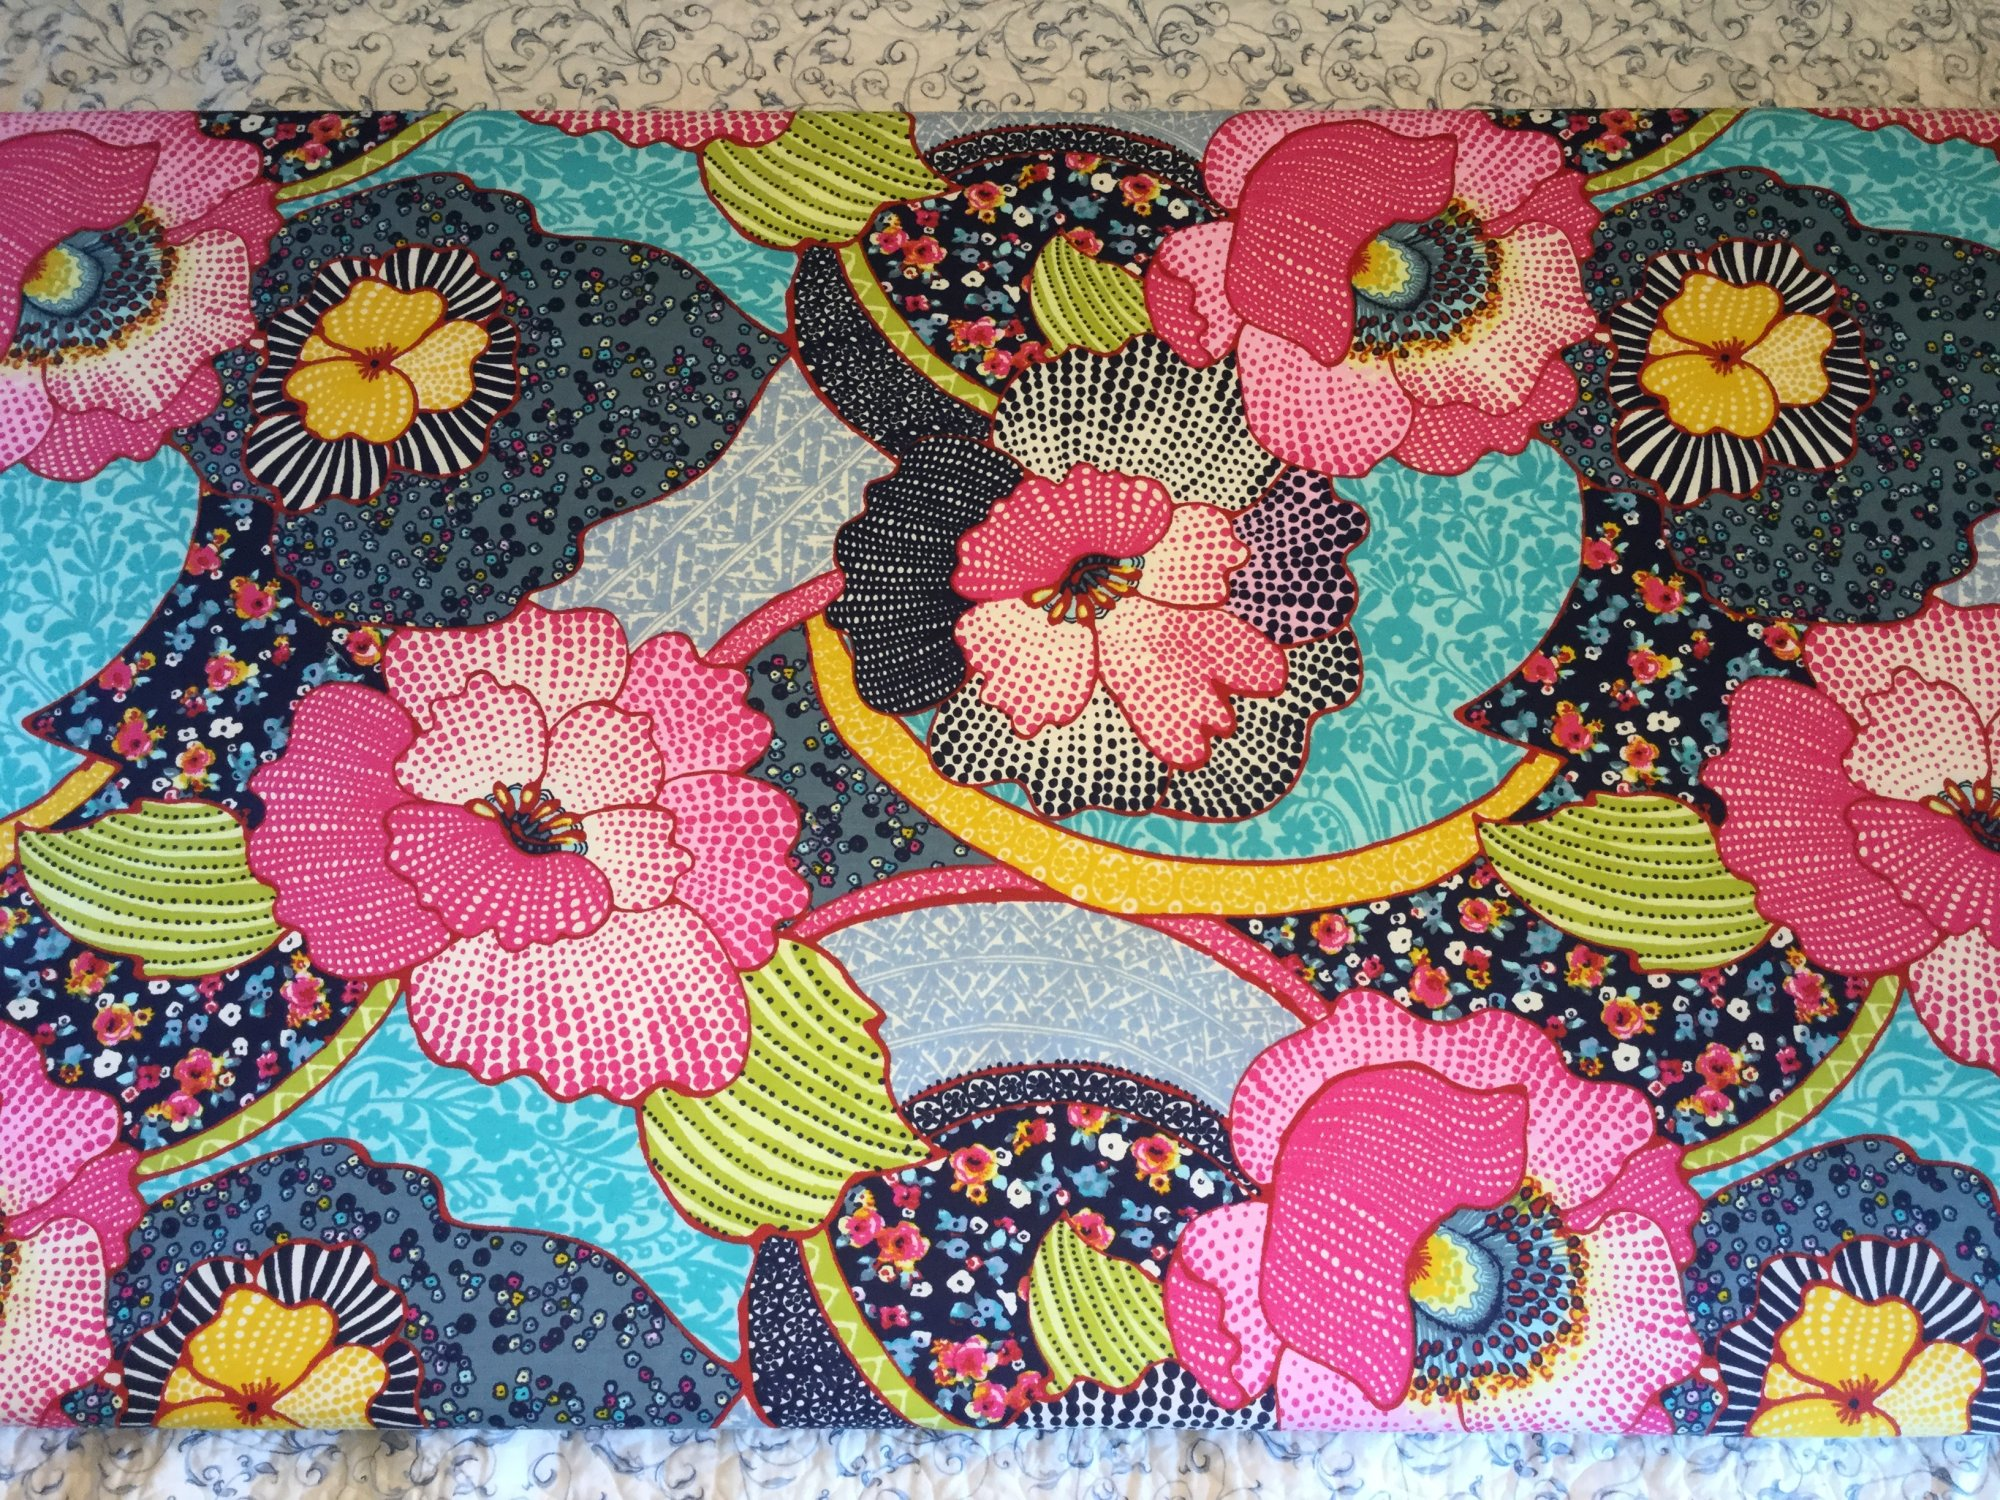 MINI GREAT BOARD PRESSING STATION - BRIGHTS  Click for more fabric selections